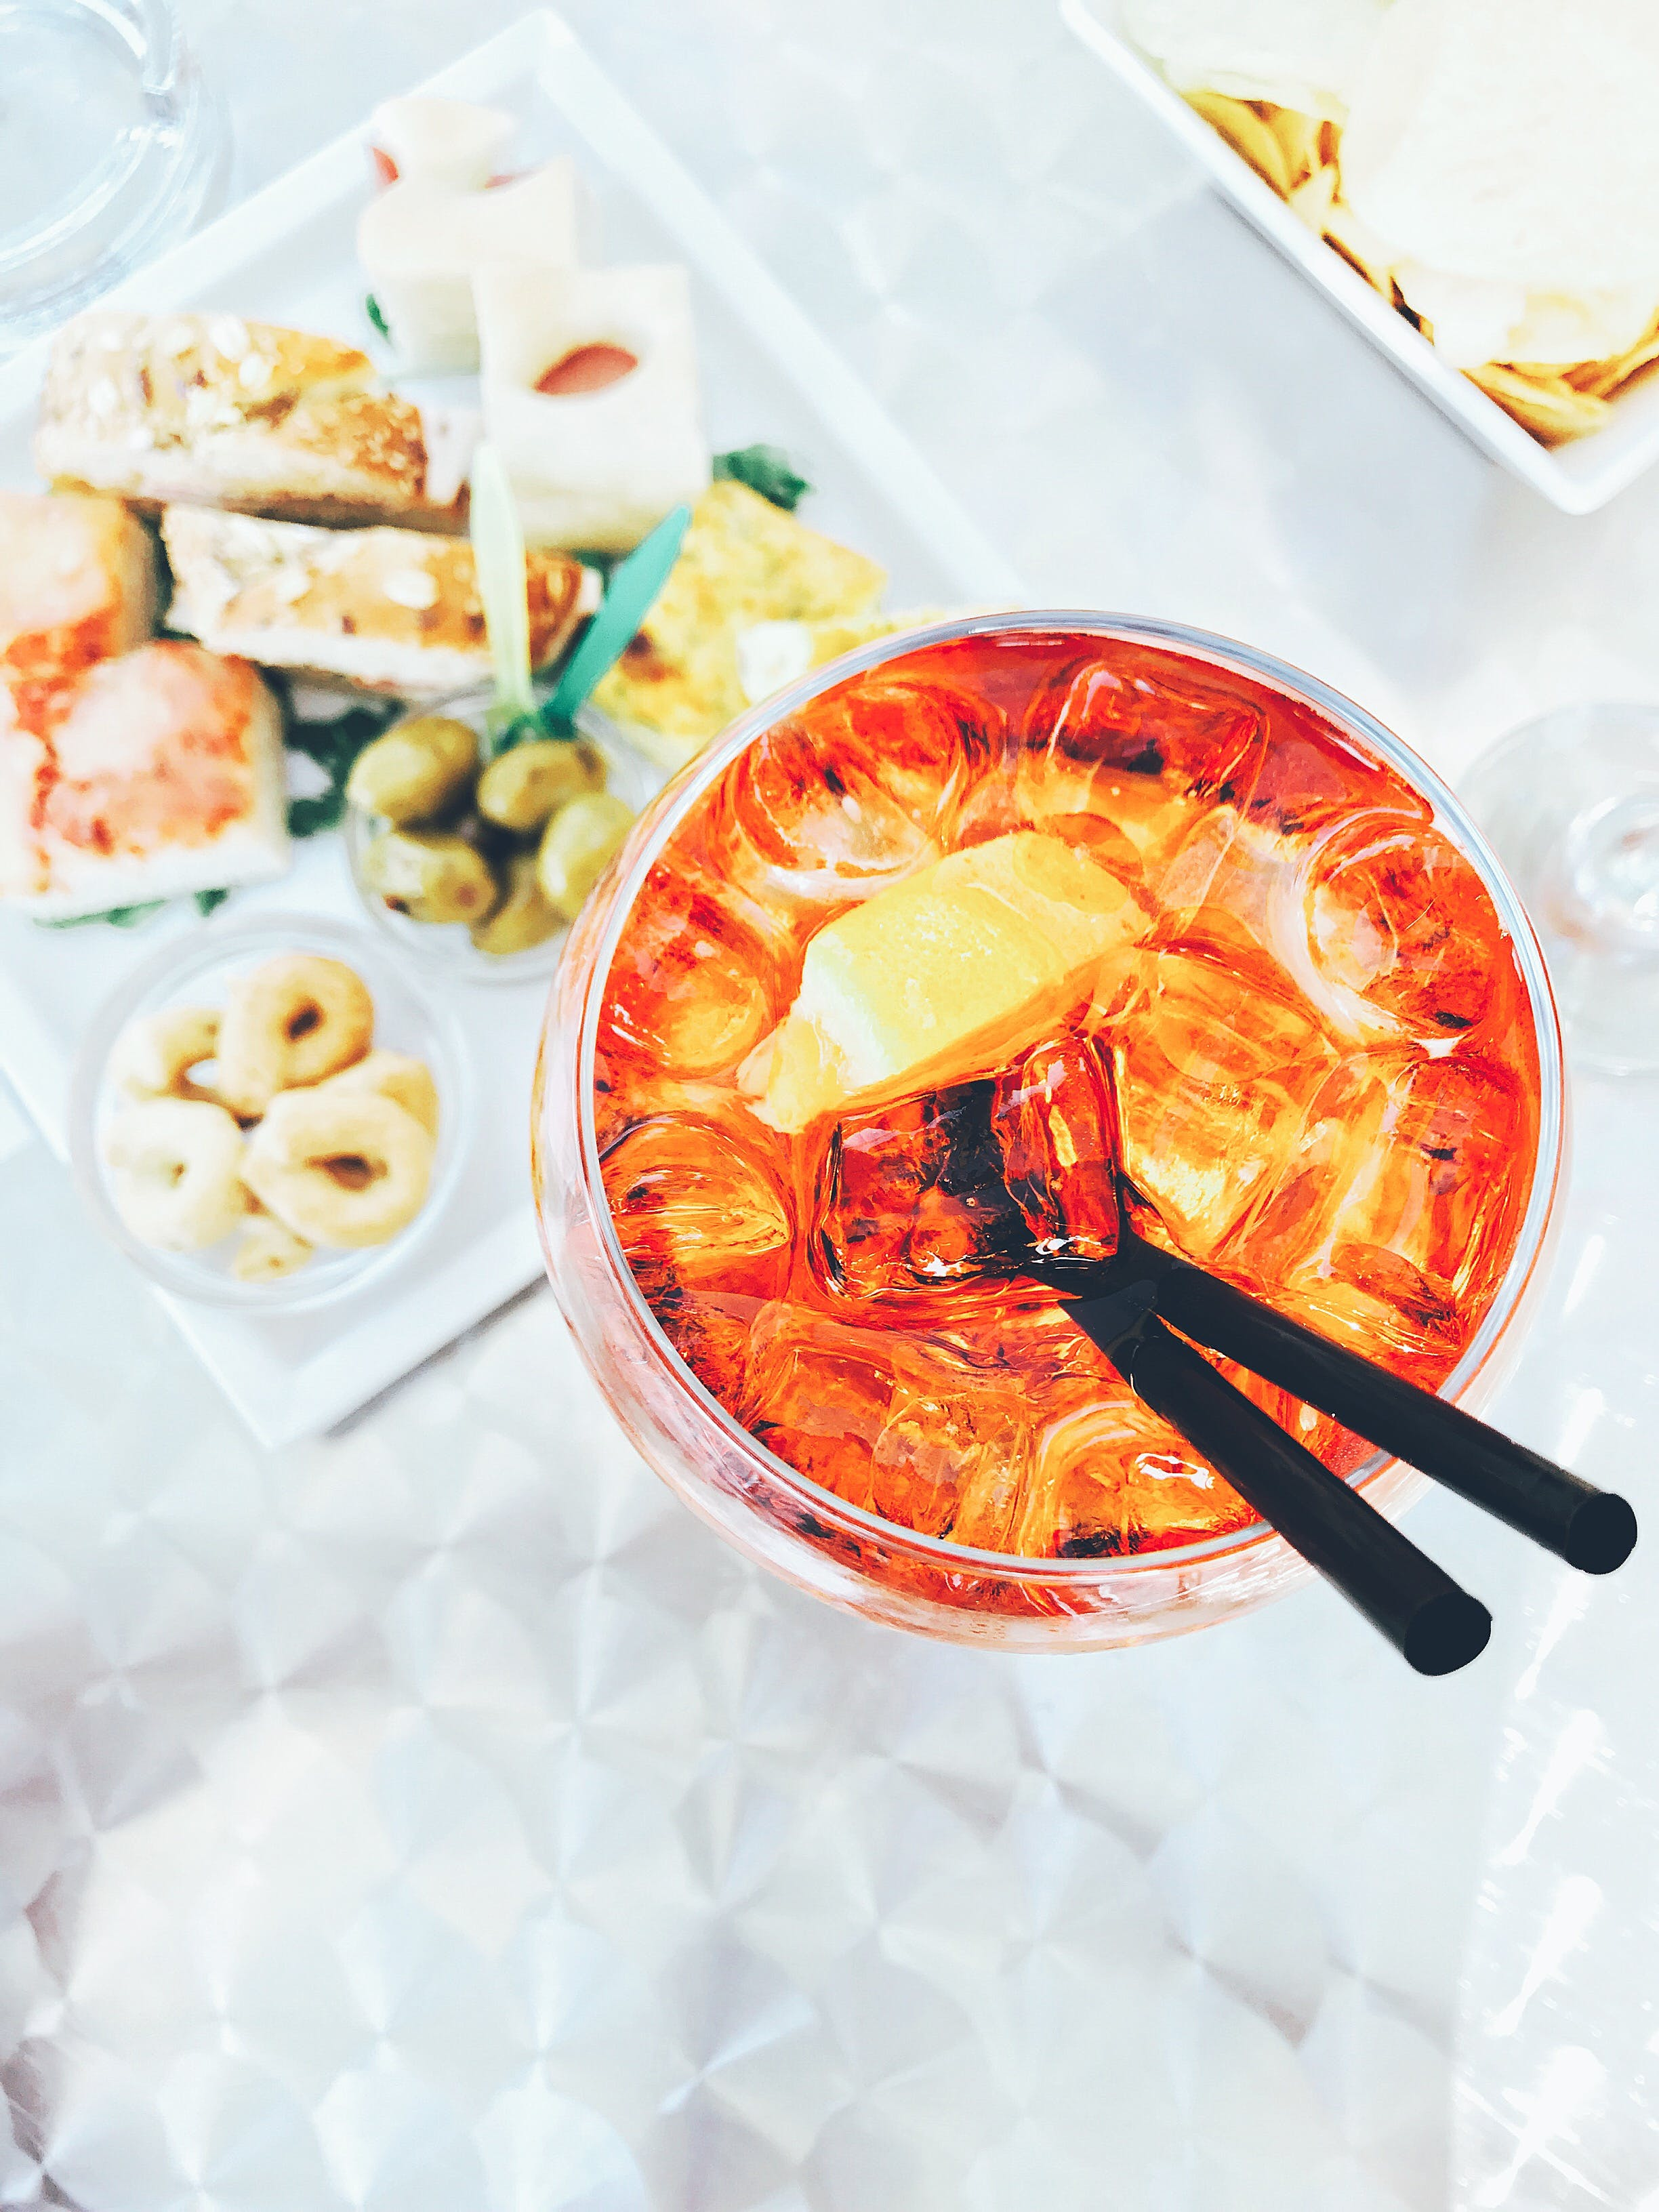 Photo Of Clear Drinking Glass Filled With Liquid Beside Food On Table